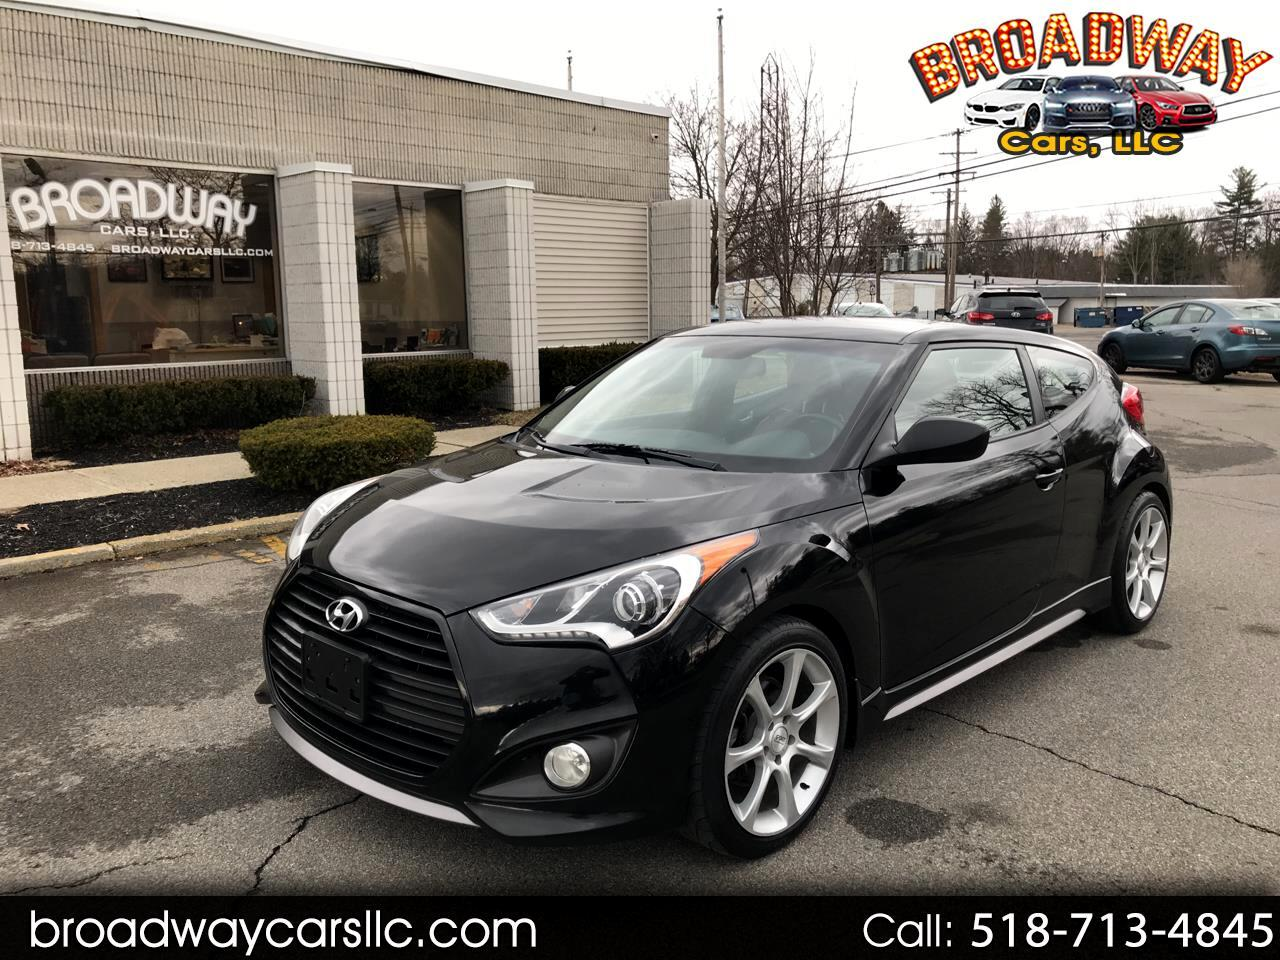 Hyundai Veloster 3dr Cpe Man Turbo R-Spec 2015